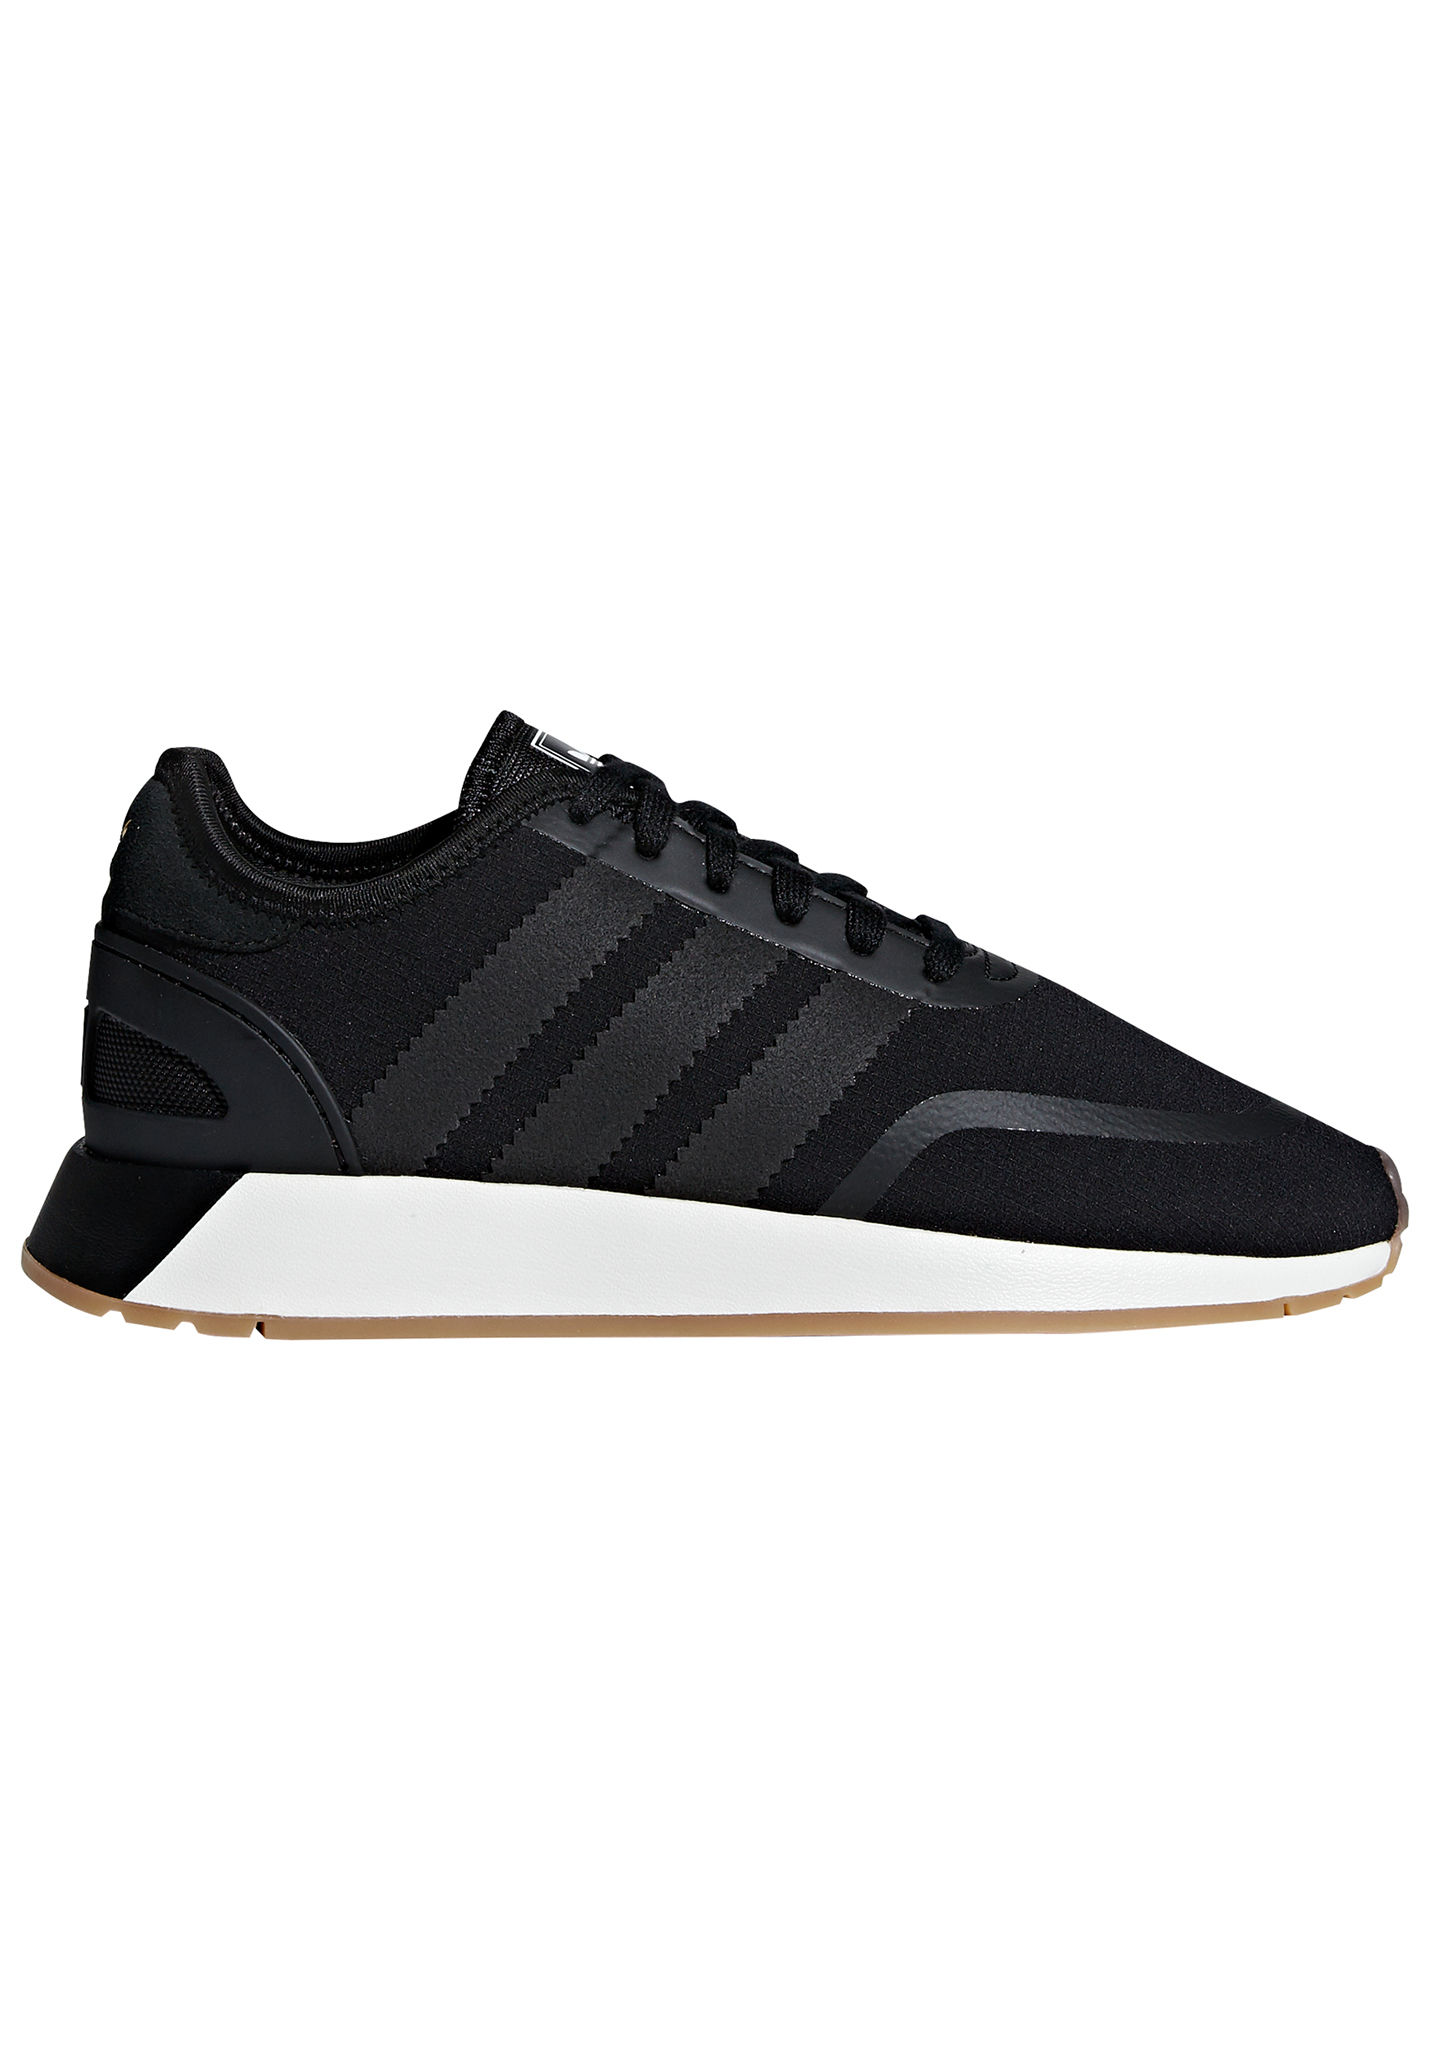 a650c80370b341 ADIDAS ORIGINALS N-5923 - Sneakers for Women - Black - Planet Sports